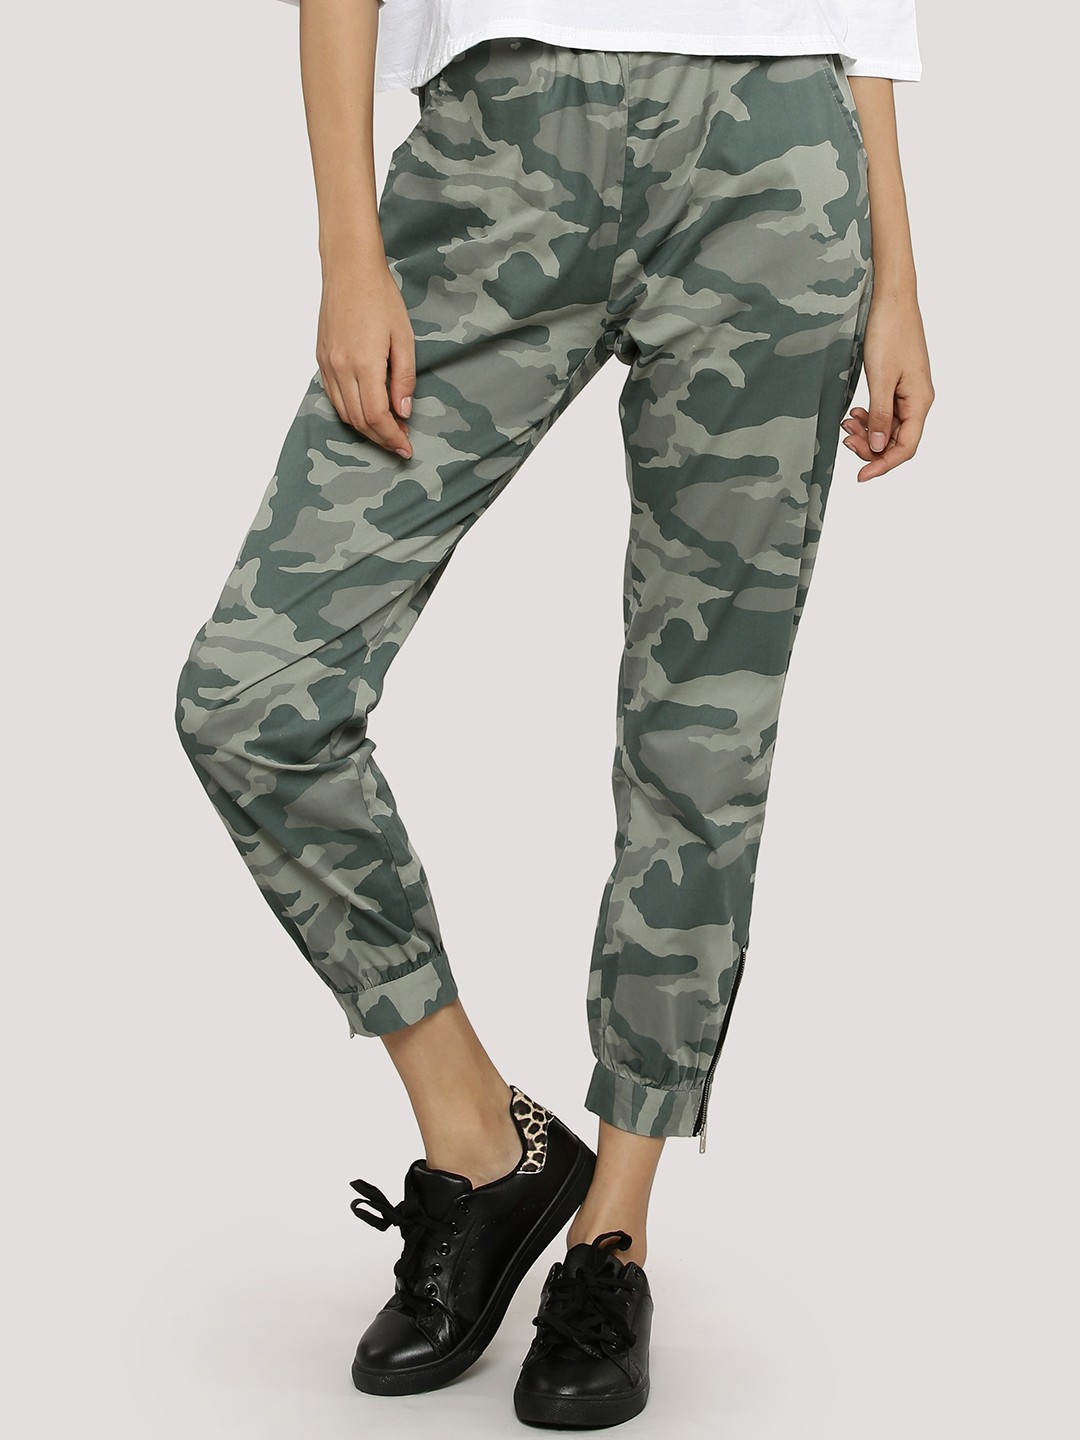 Shop for printed jogger pants womens online at Target. Free shipping on purchases over $35 and save 5% every day with your Target REDcard.